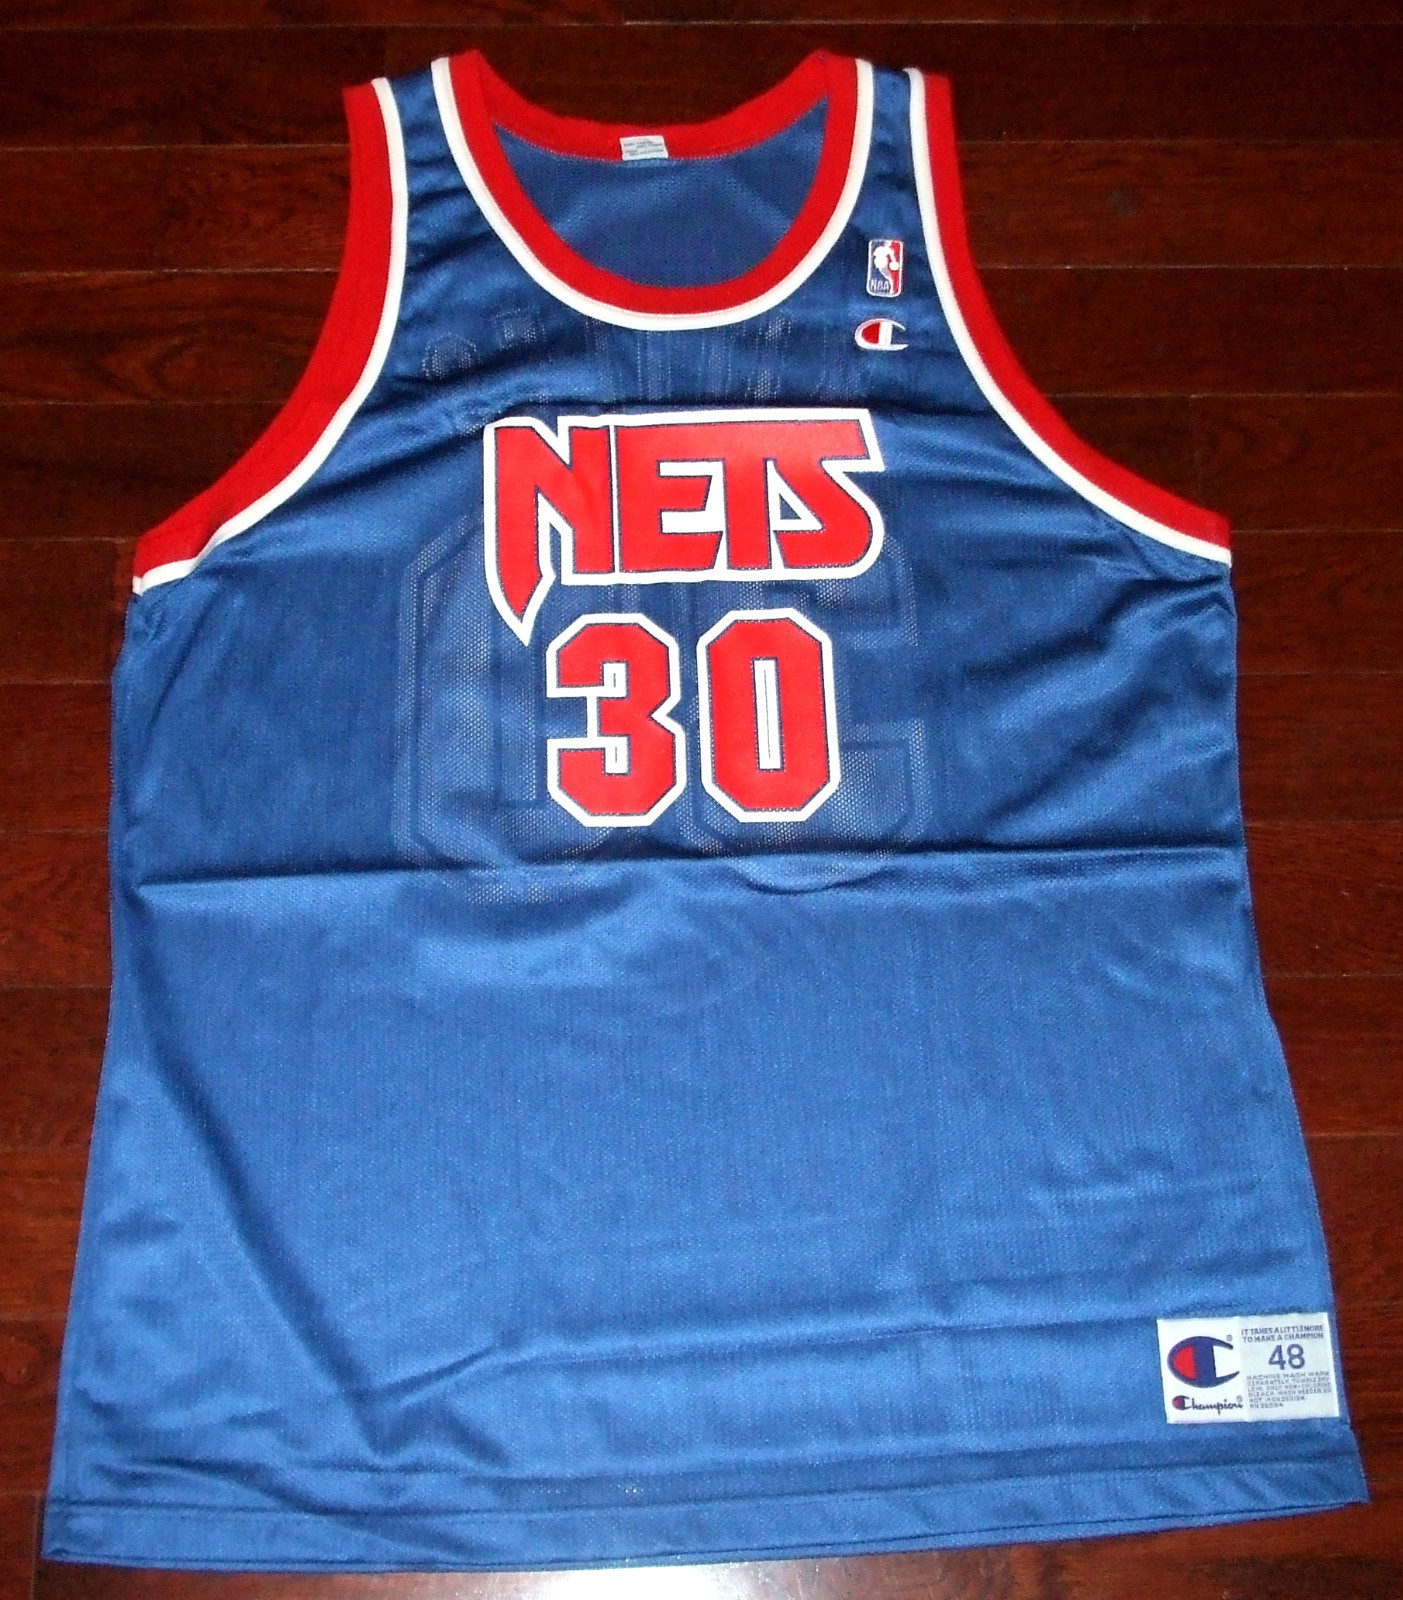 The Top Ten Vintage Nba Jerseys 1 00 Pm On A Wednesday